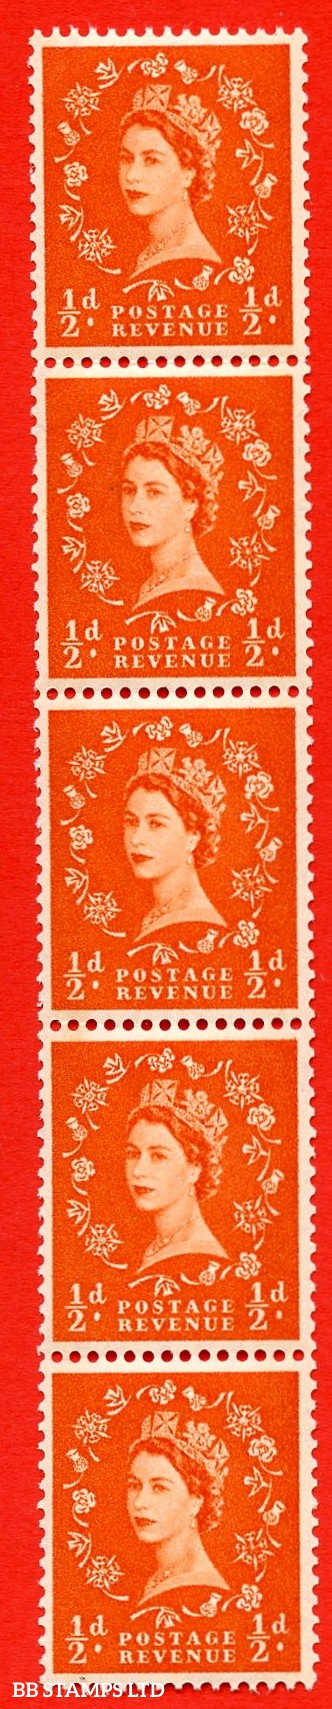 SG.610. S10g. ½d Orange red. A superb UNMOUNTED MINT example. Coil strip of 5. Blue phosphor cream paper. With a shamrock flaw ERROR. Roll 11 variety.